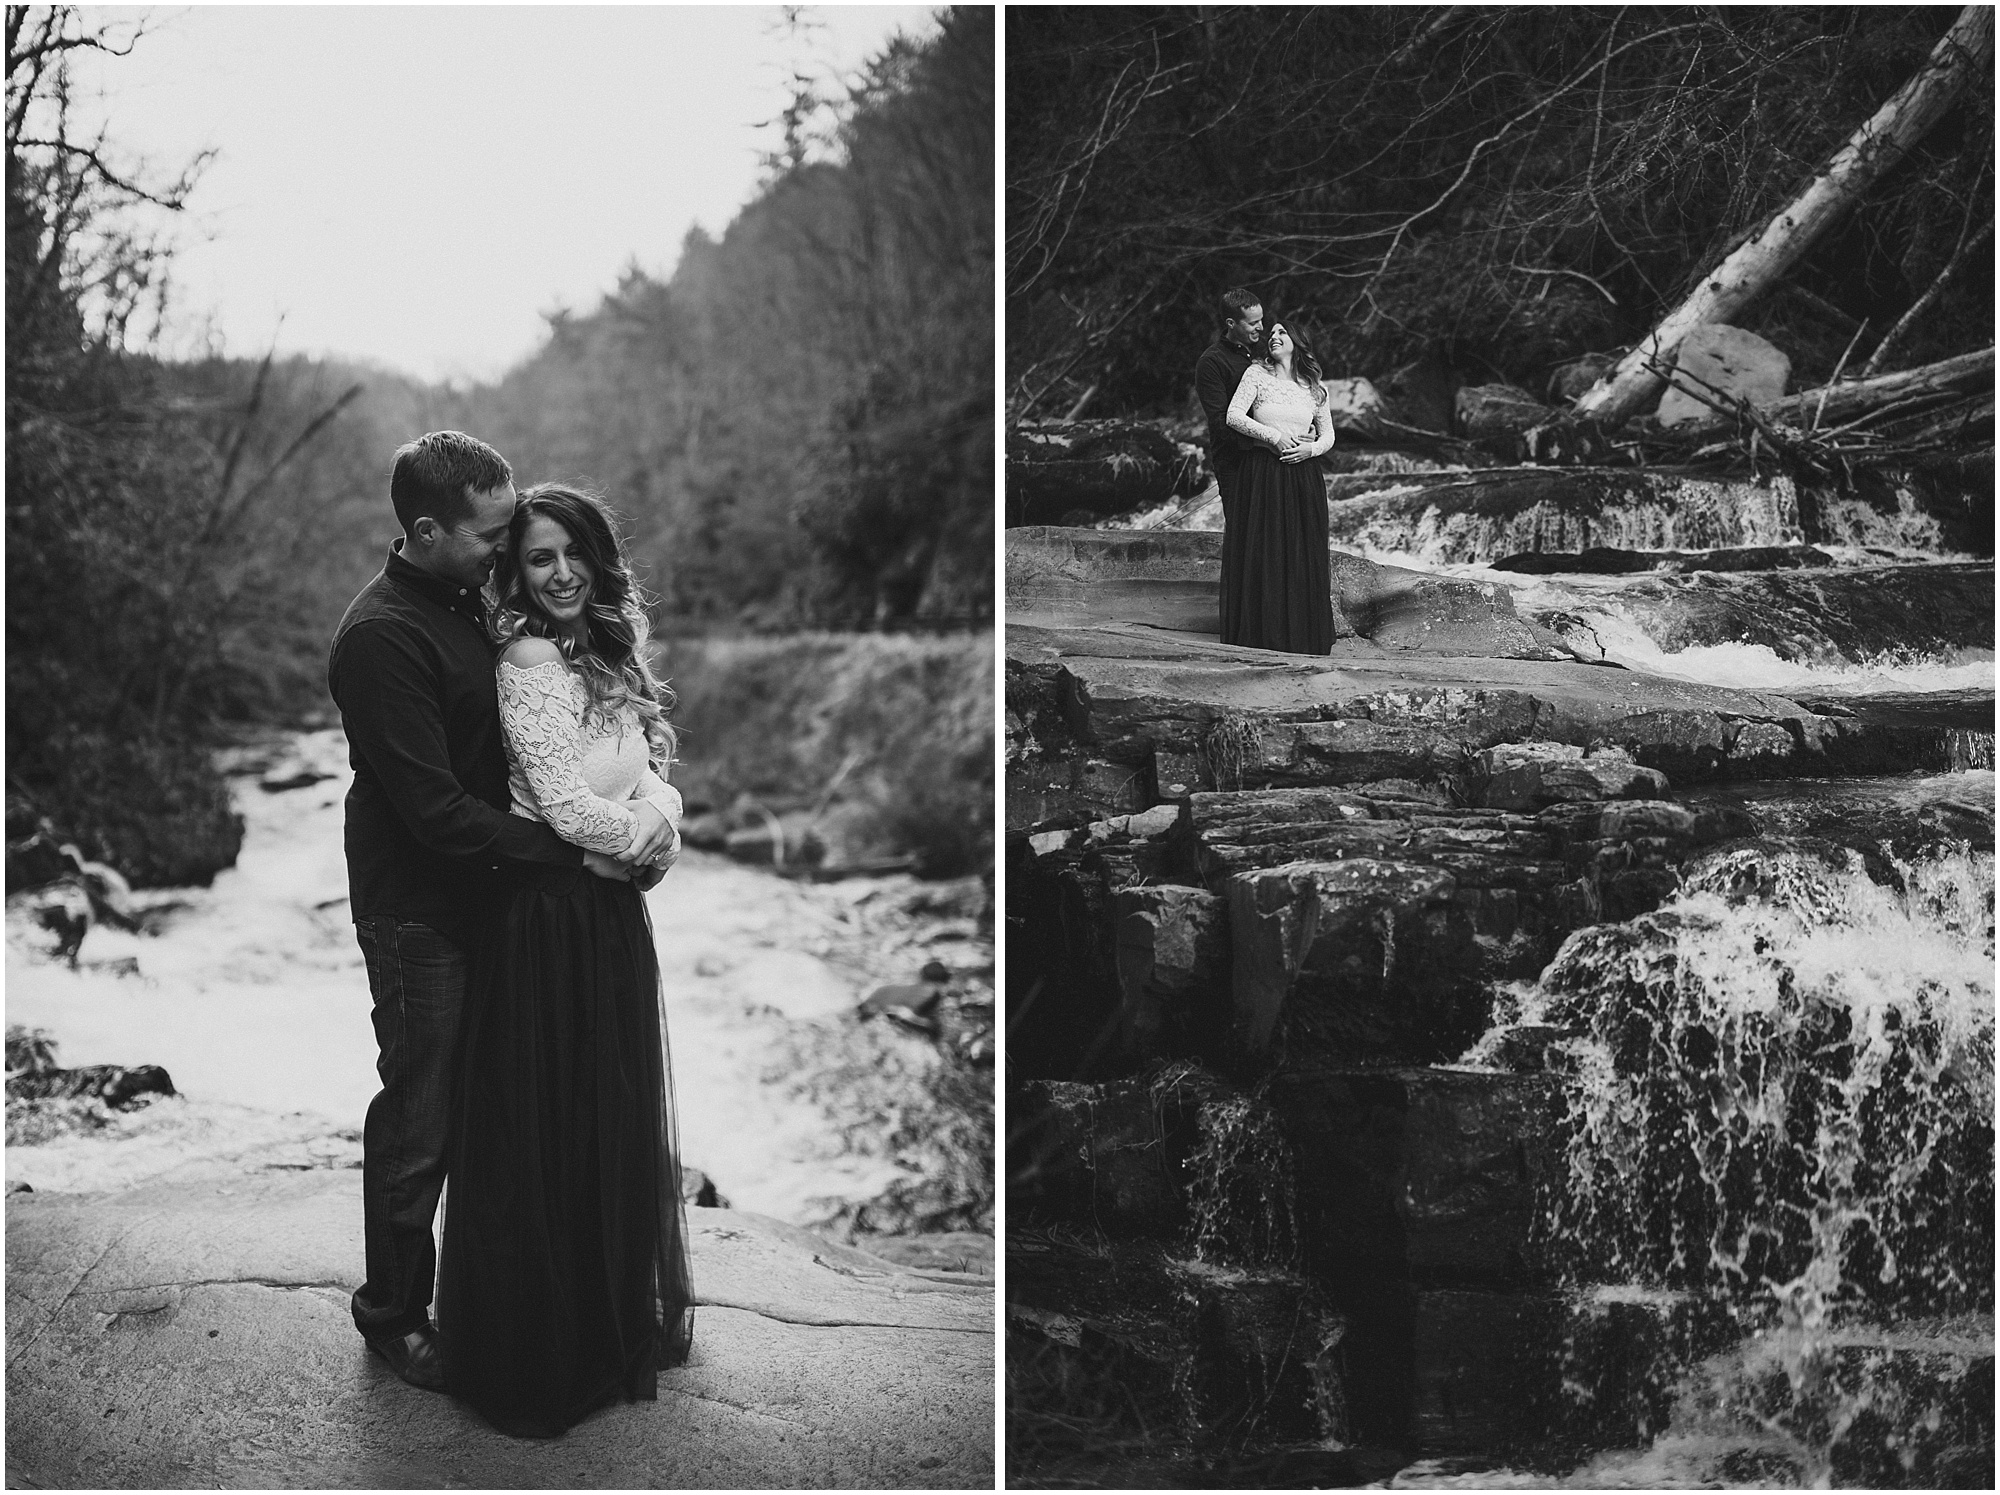 B&W photos on waterfall